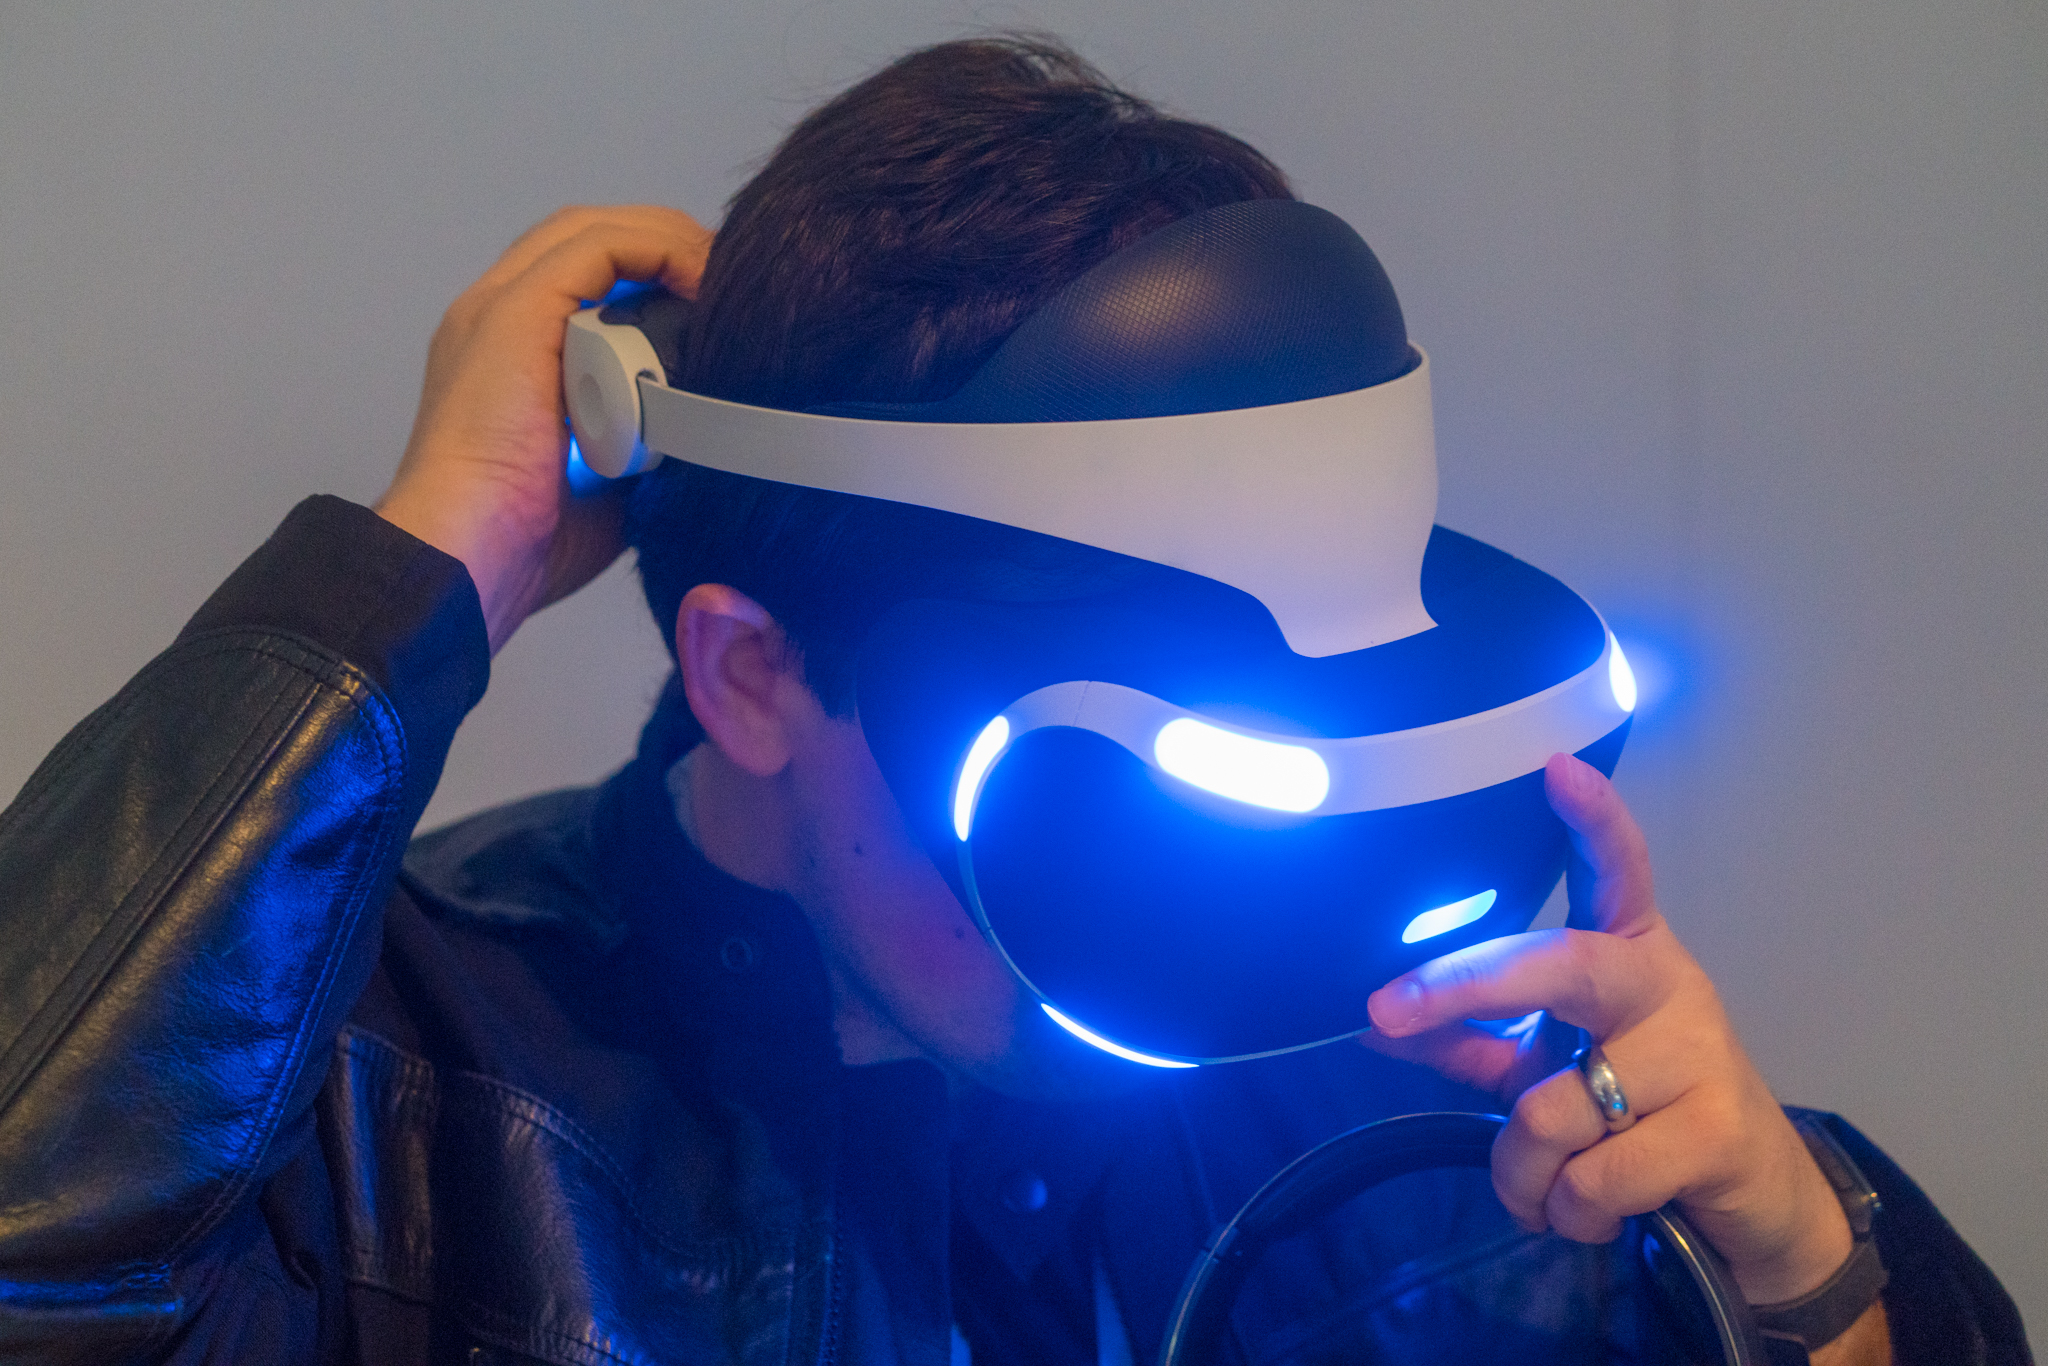 PlayStation VR made us smile, and it's because of the games